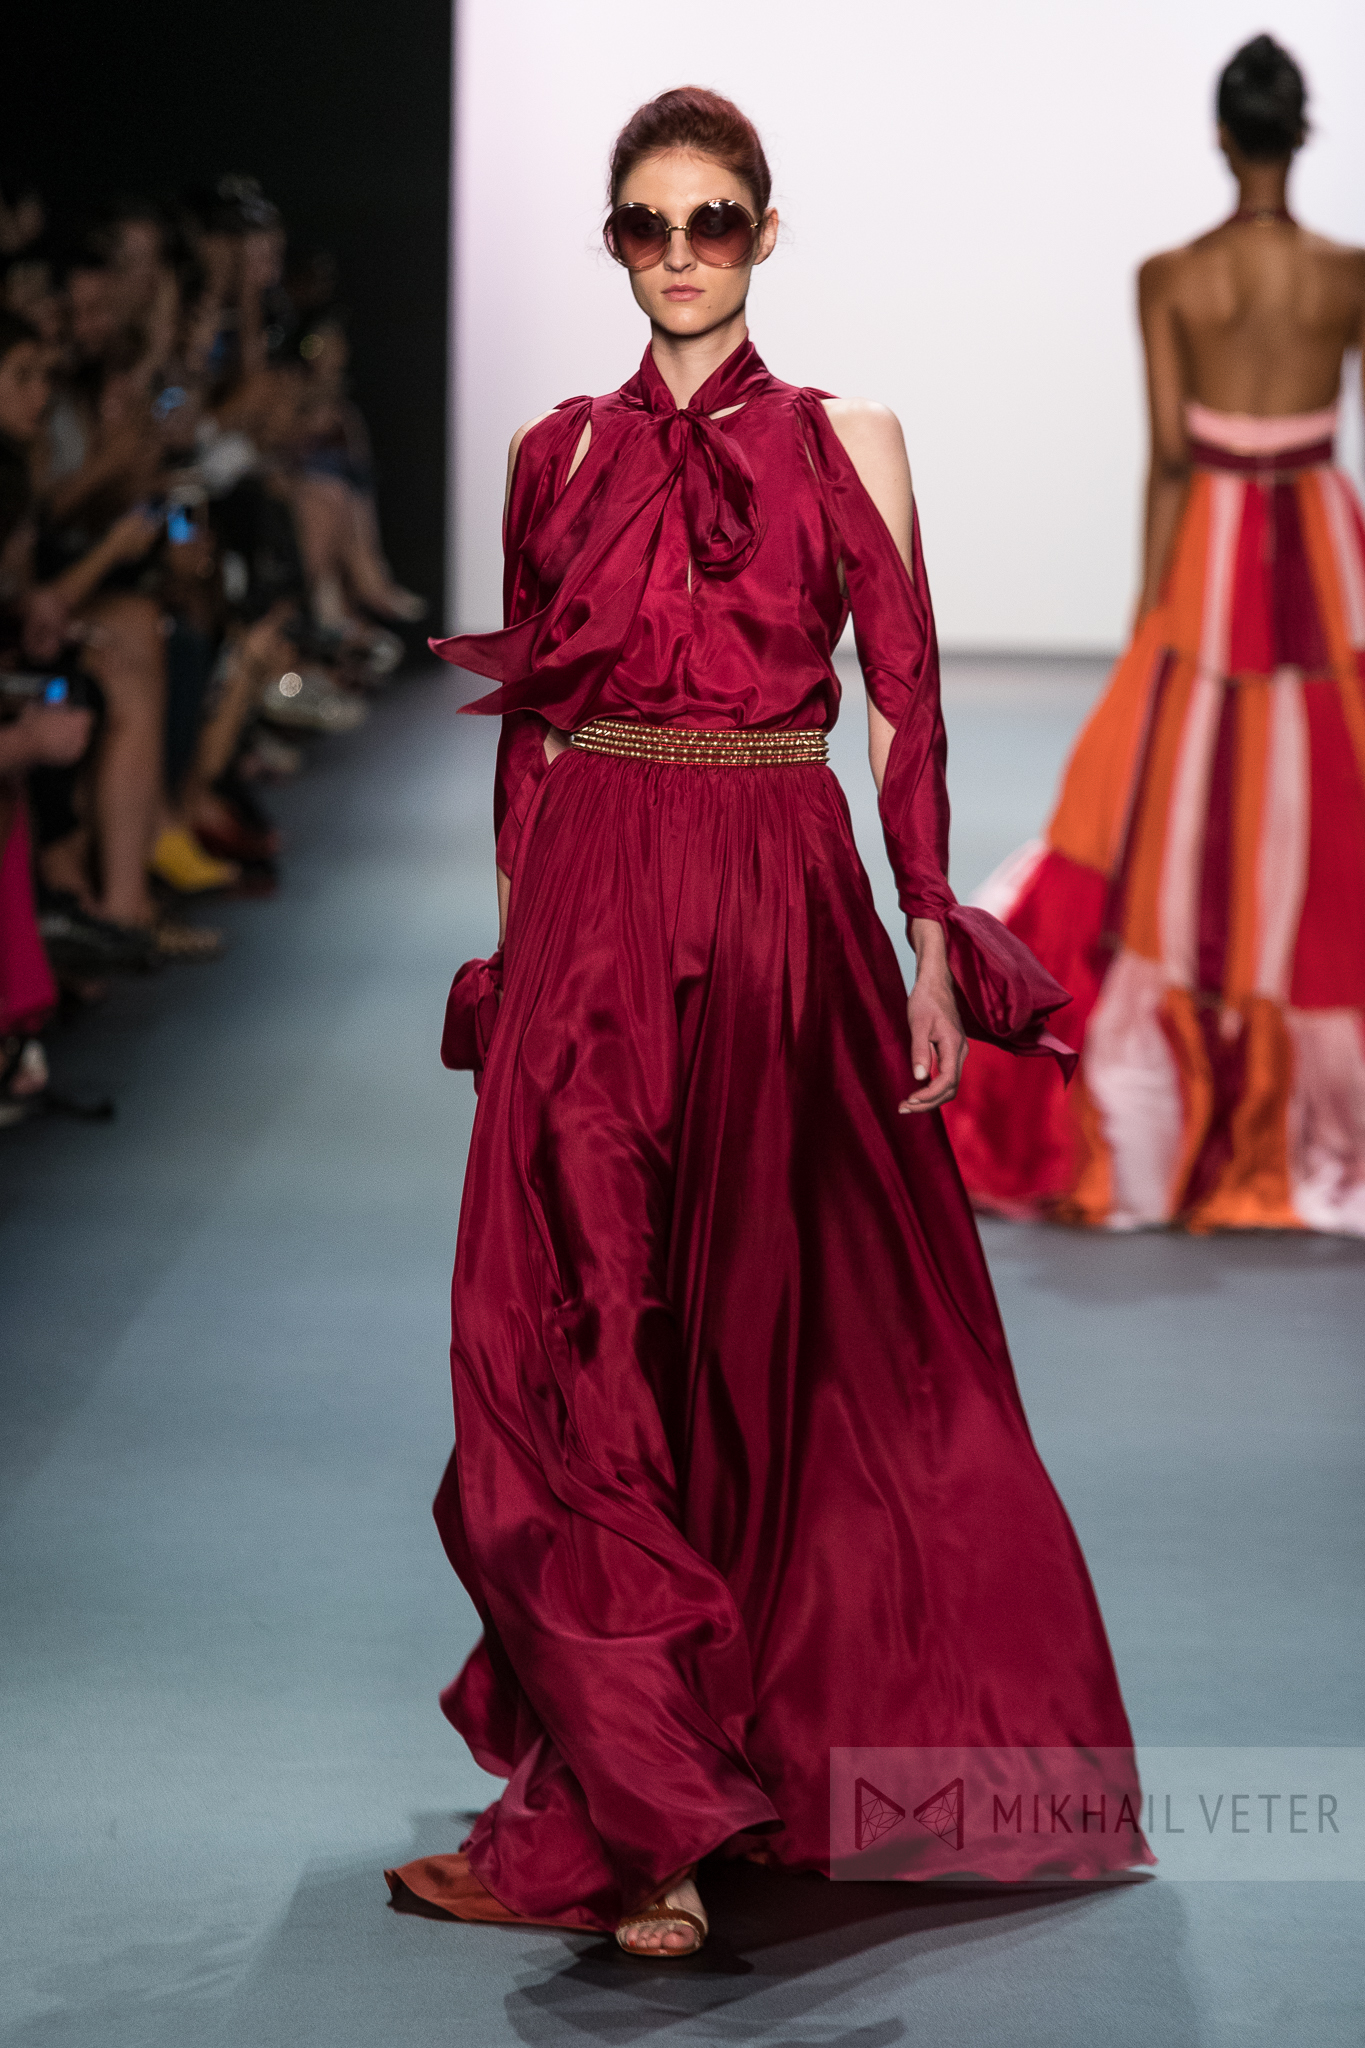 jenny-packham-new-york-fashion-week-0789